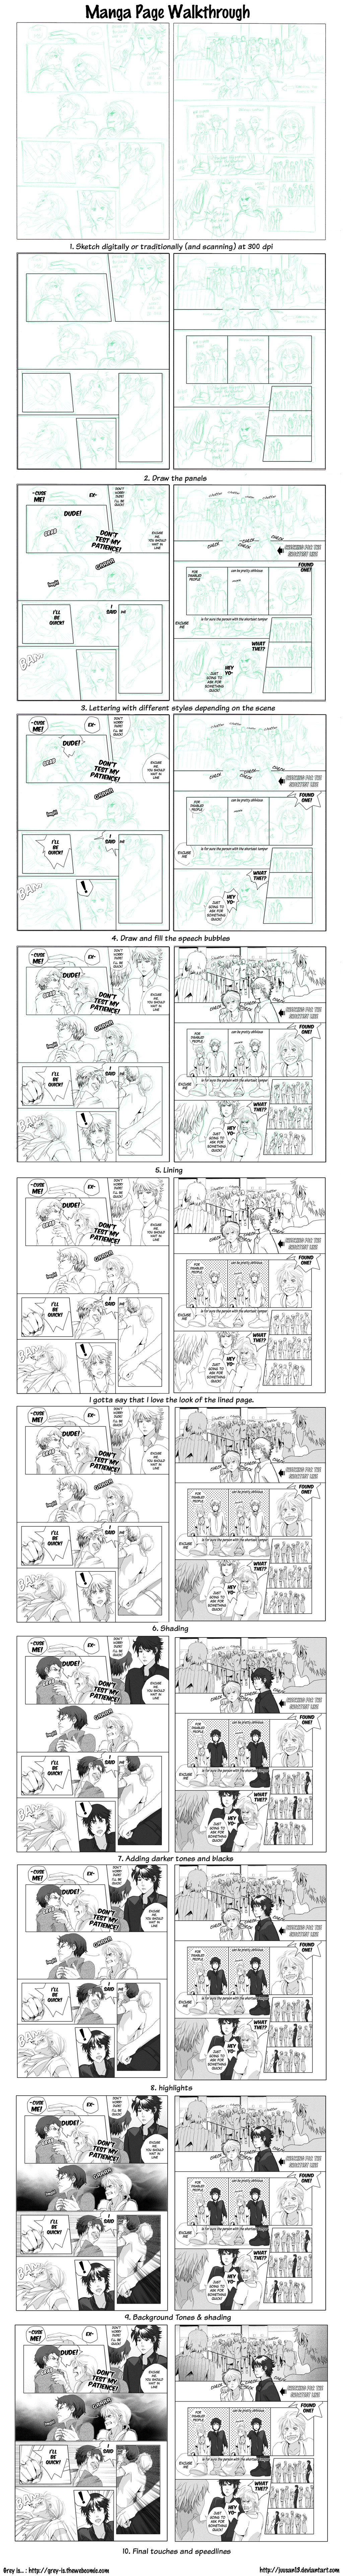 Manga Page Process By Deejuusan On Deviantart Comic Tutorial Manga Drawing Tutorials Comic Book Layout